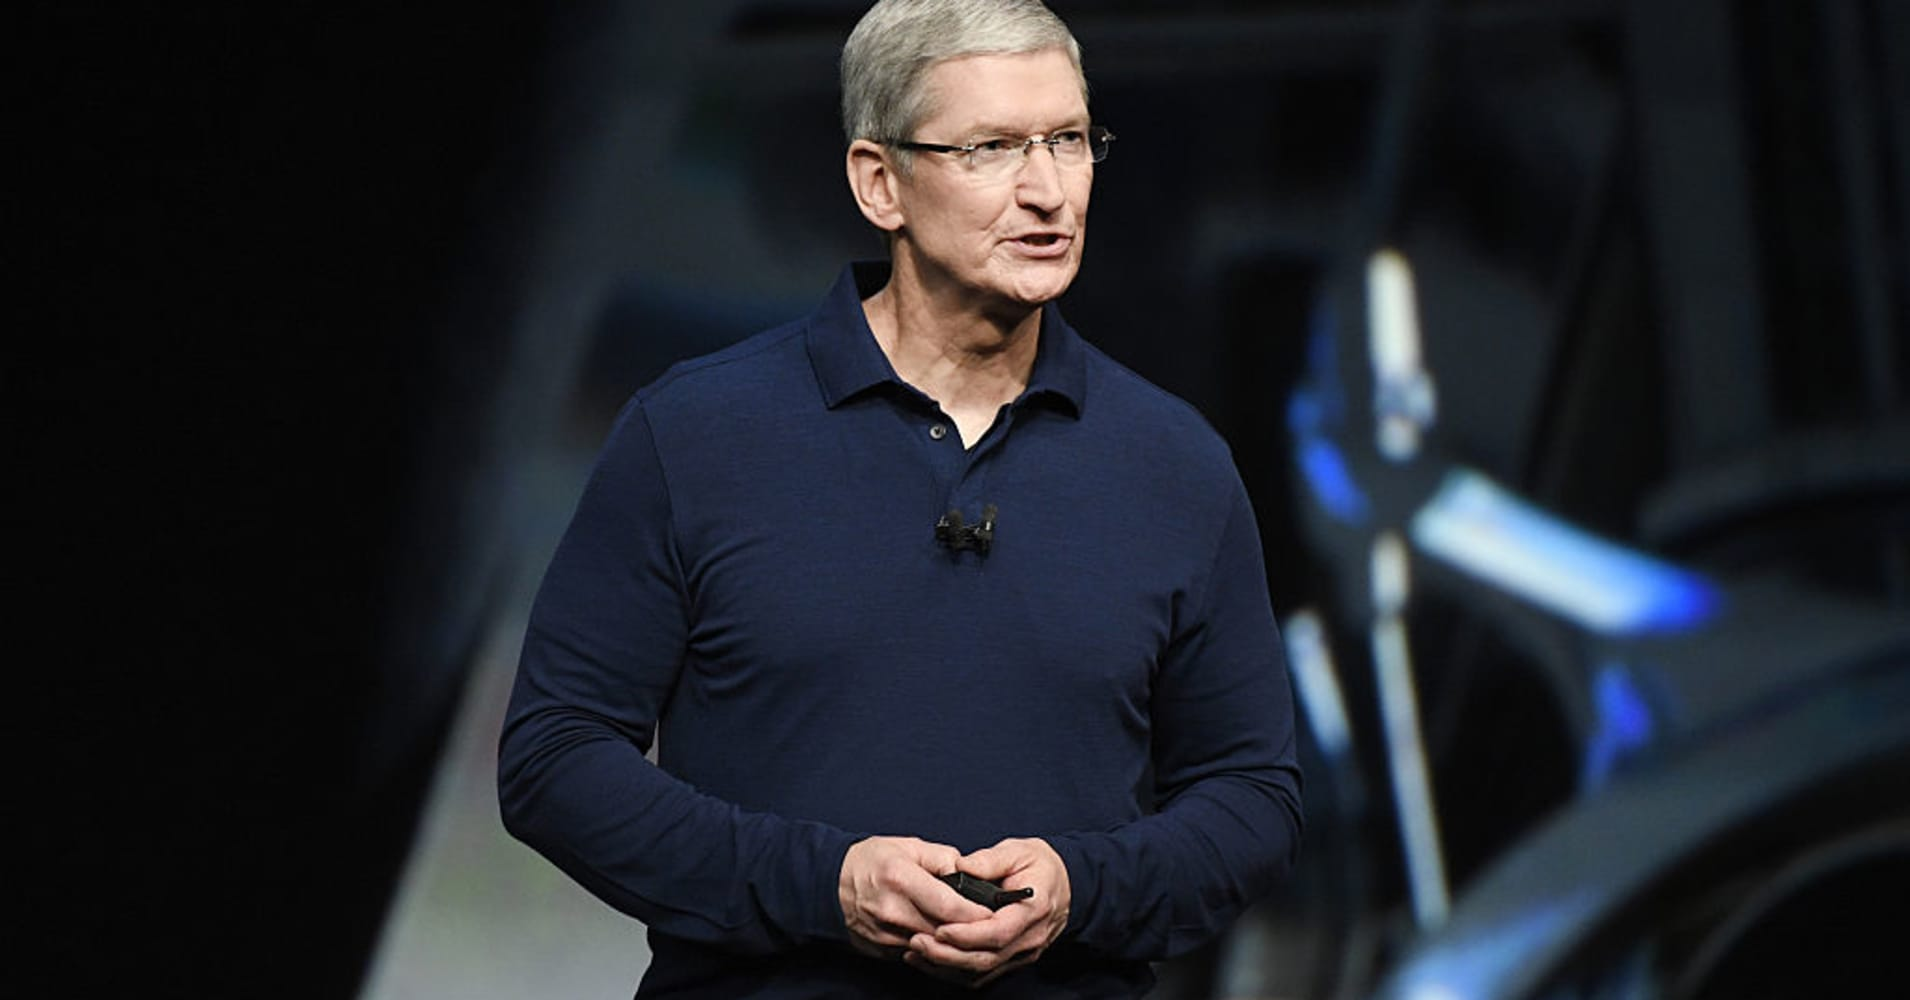 Apple has a secret team working on the holy grail for treating diabetes